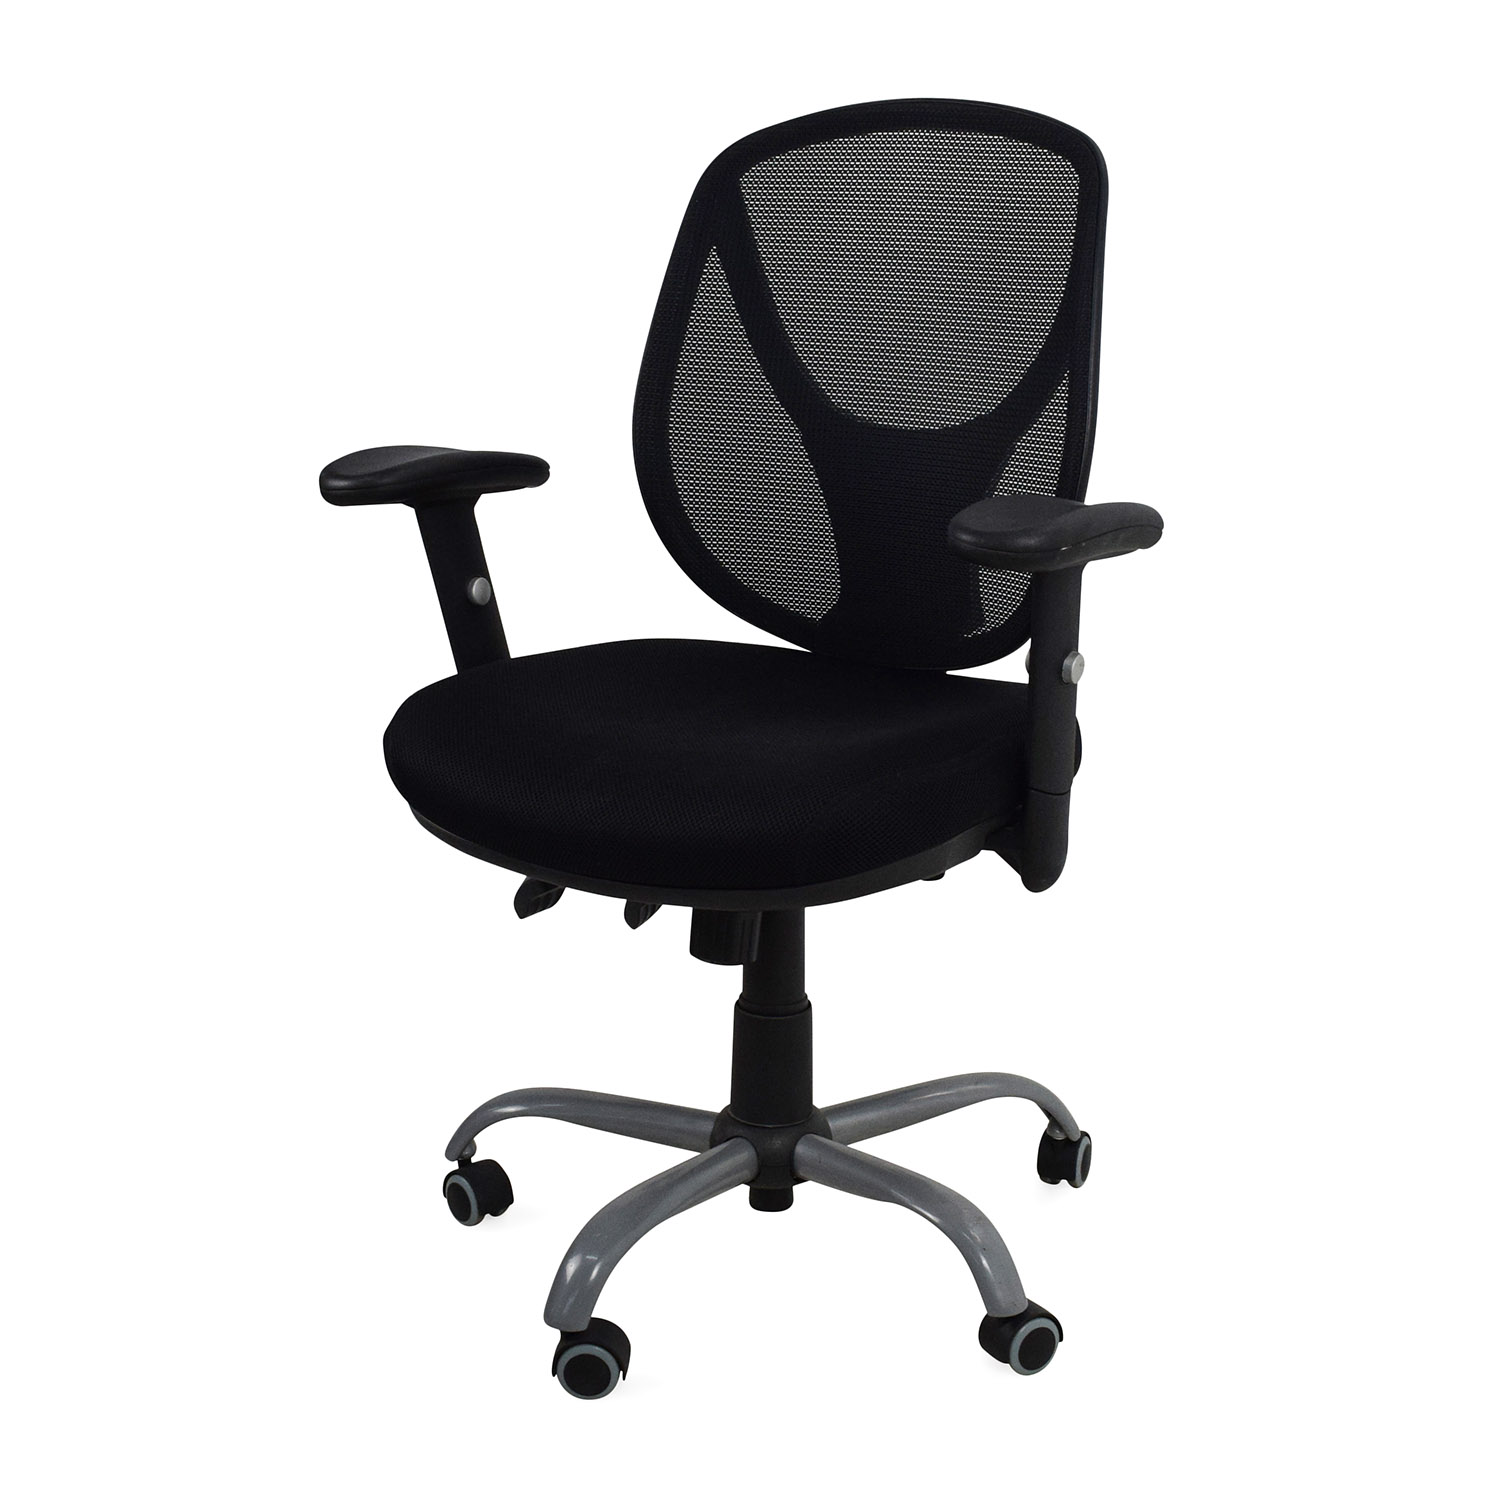 Staples Ergonomic Chair